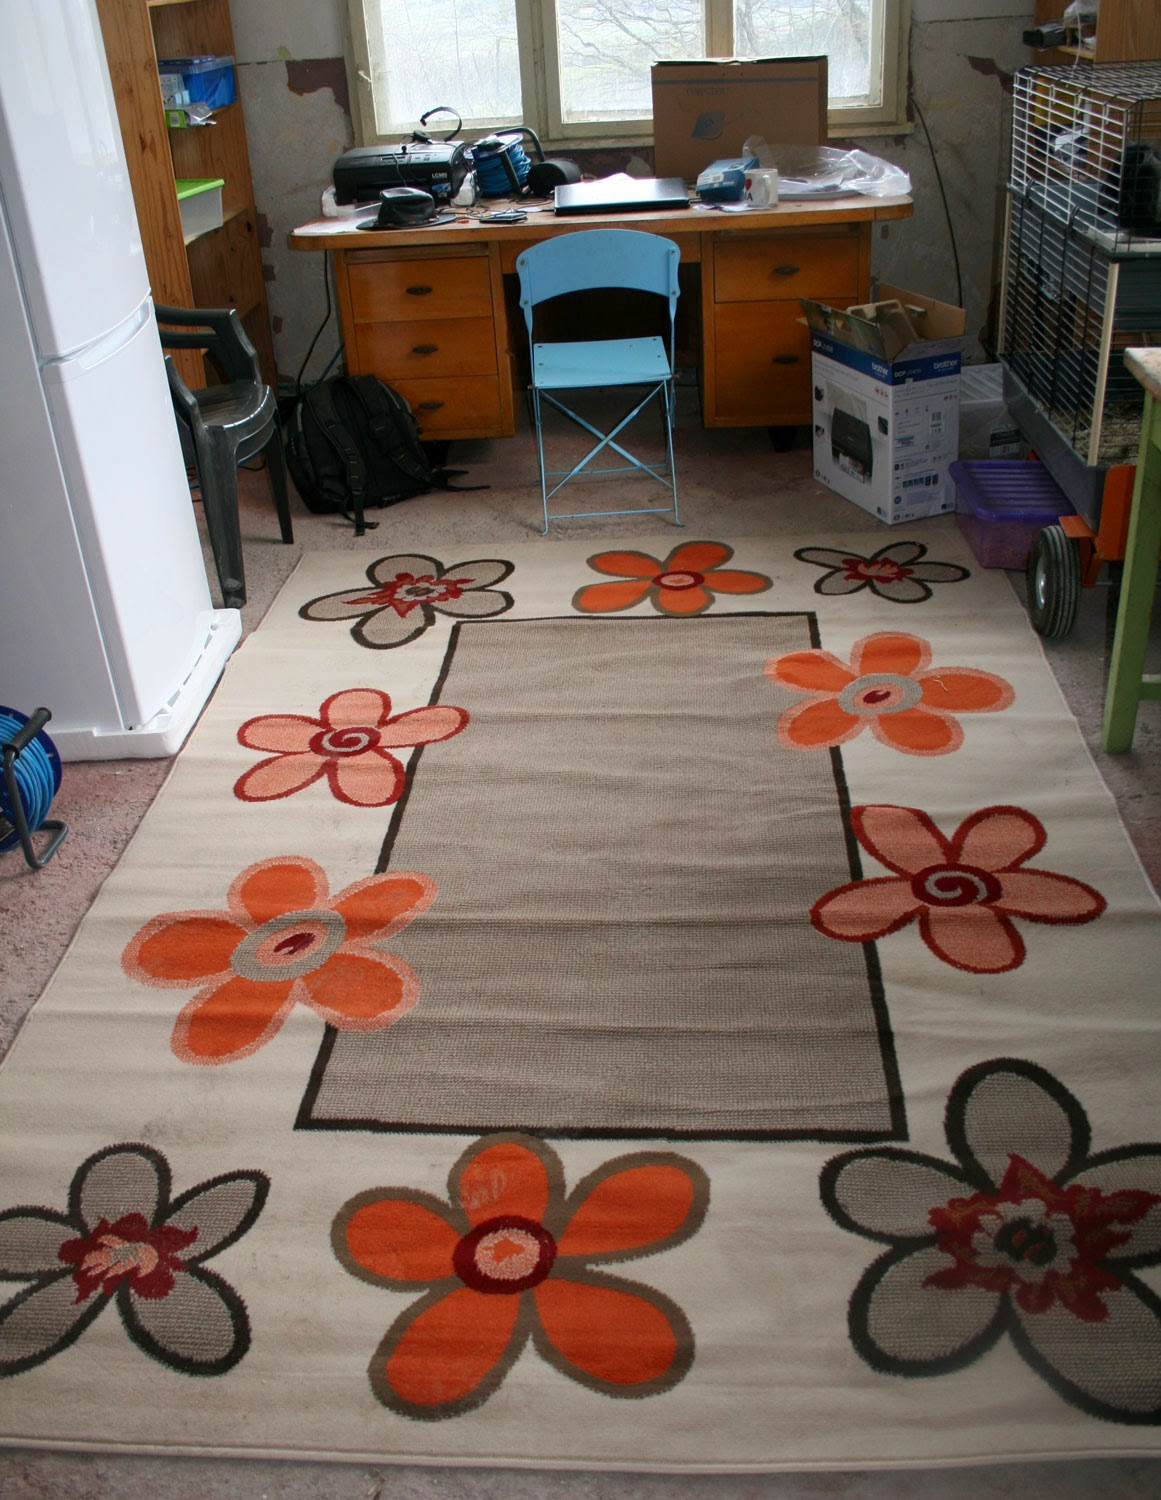 My new rug, down in Room 13